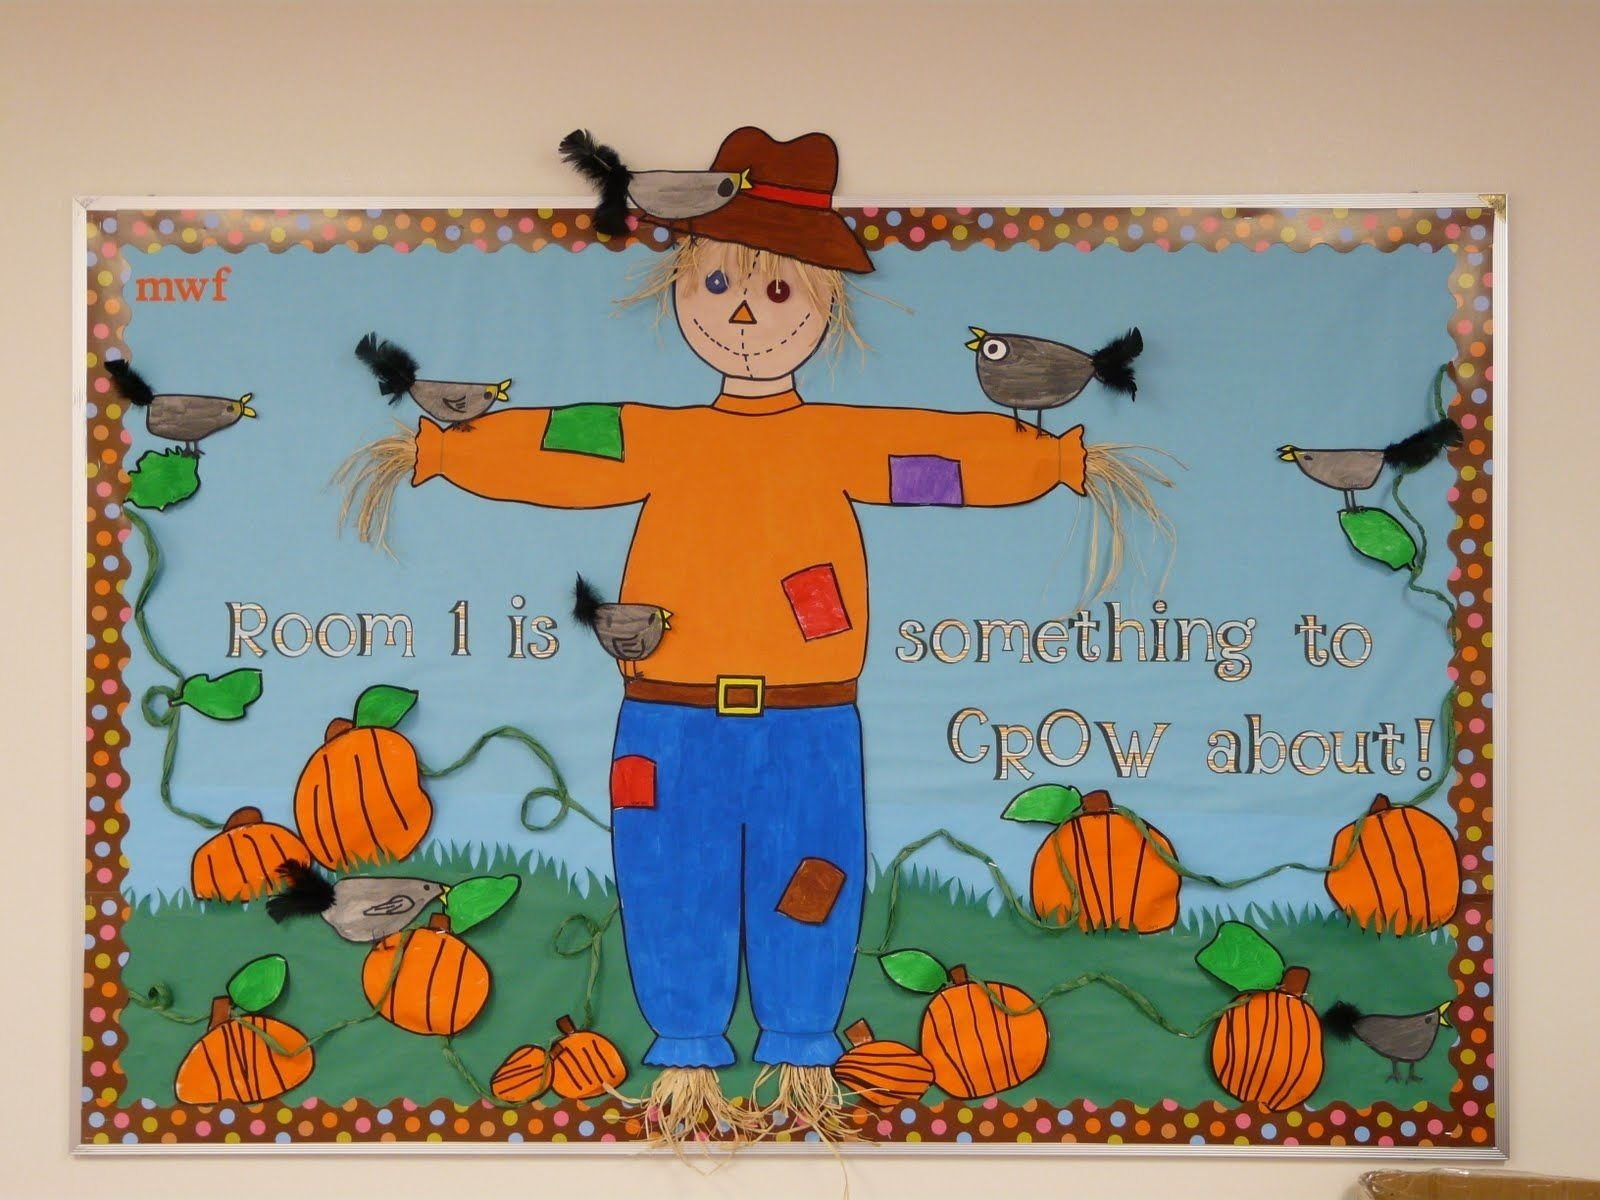 10 Unique Bulletin Board Ideas For Fall christianfallbulletinboardideas bulletin board ideas fall 2020